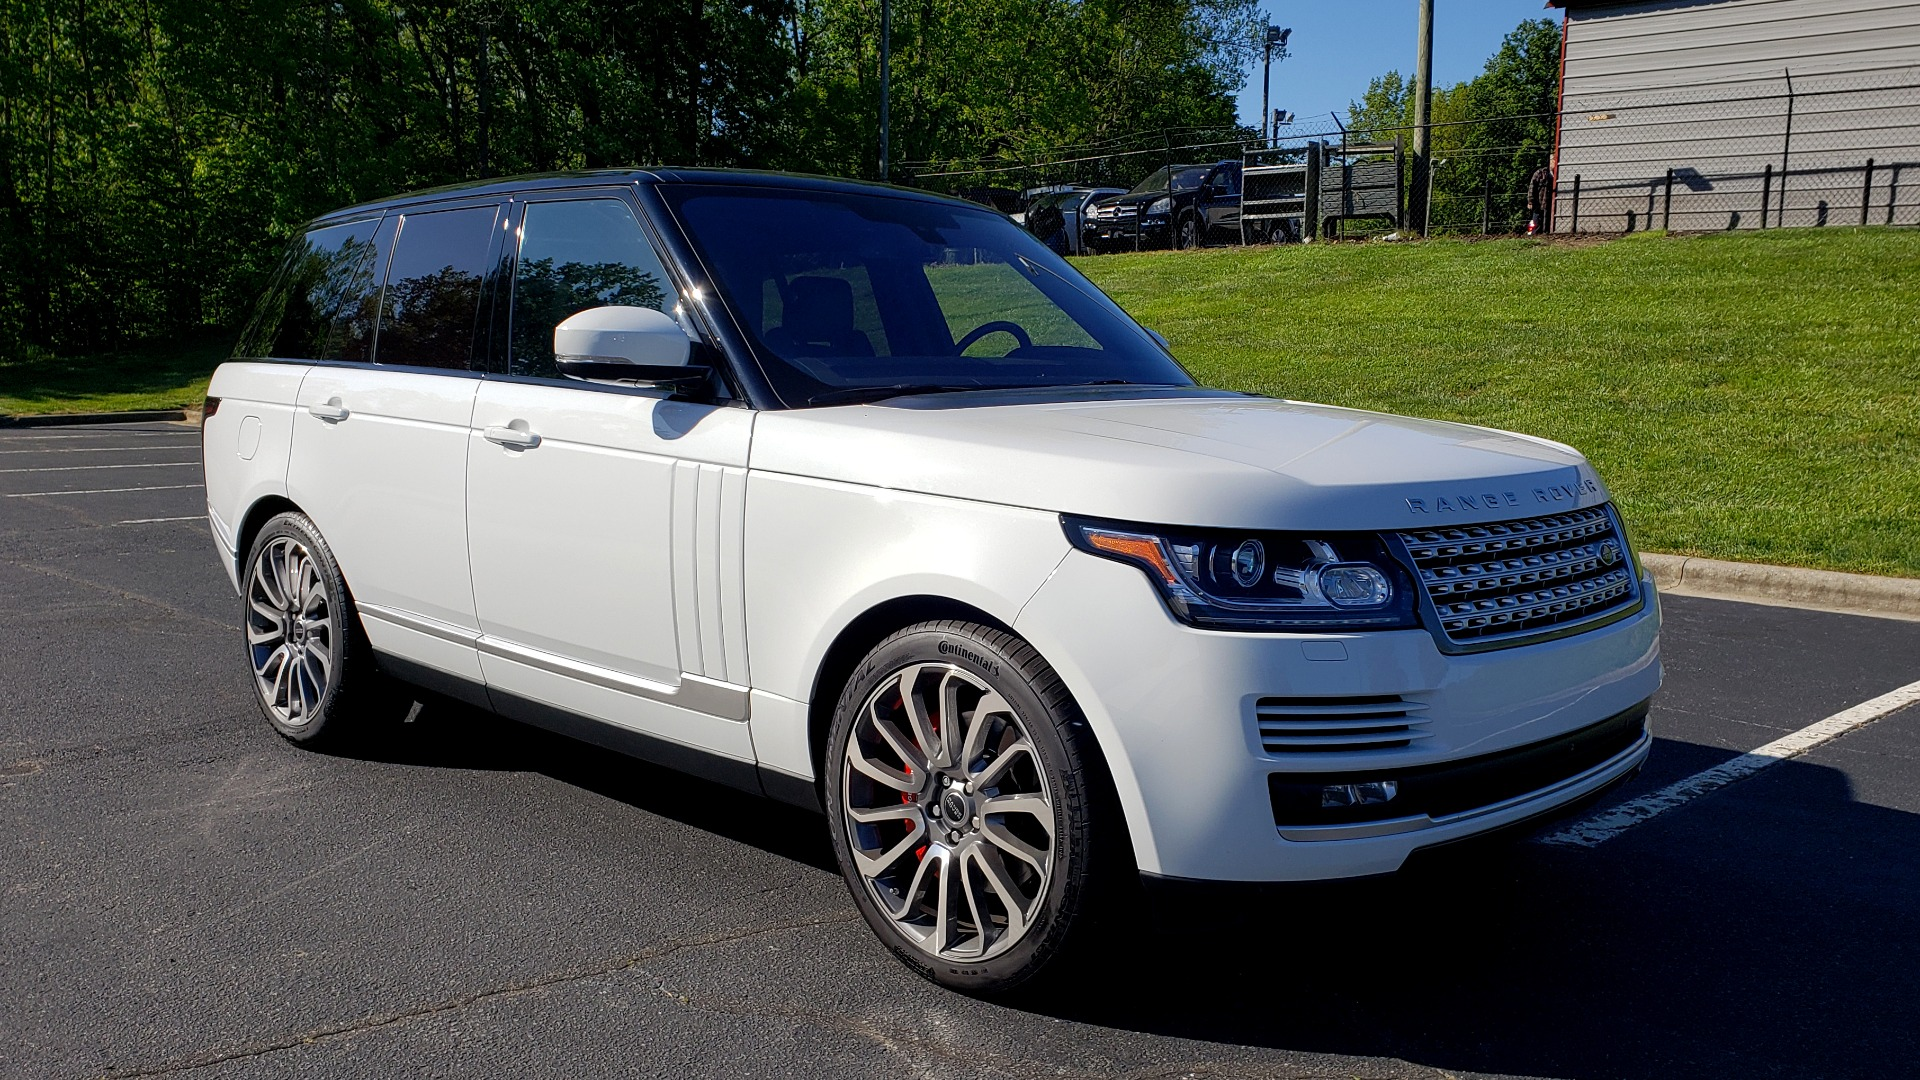 Used 2016 Land Rover RANGE ROVER HSE / AWD / SC V6 / NAV / VISION ASST / PANO-ROOF / BSM for sale $47,495 at Formula Imports in Charlotte NC 28227 4